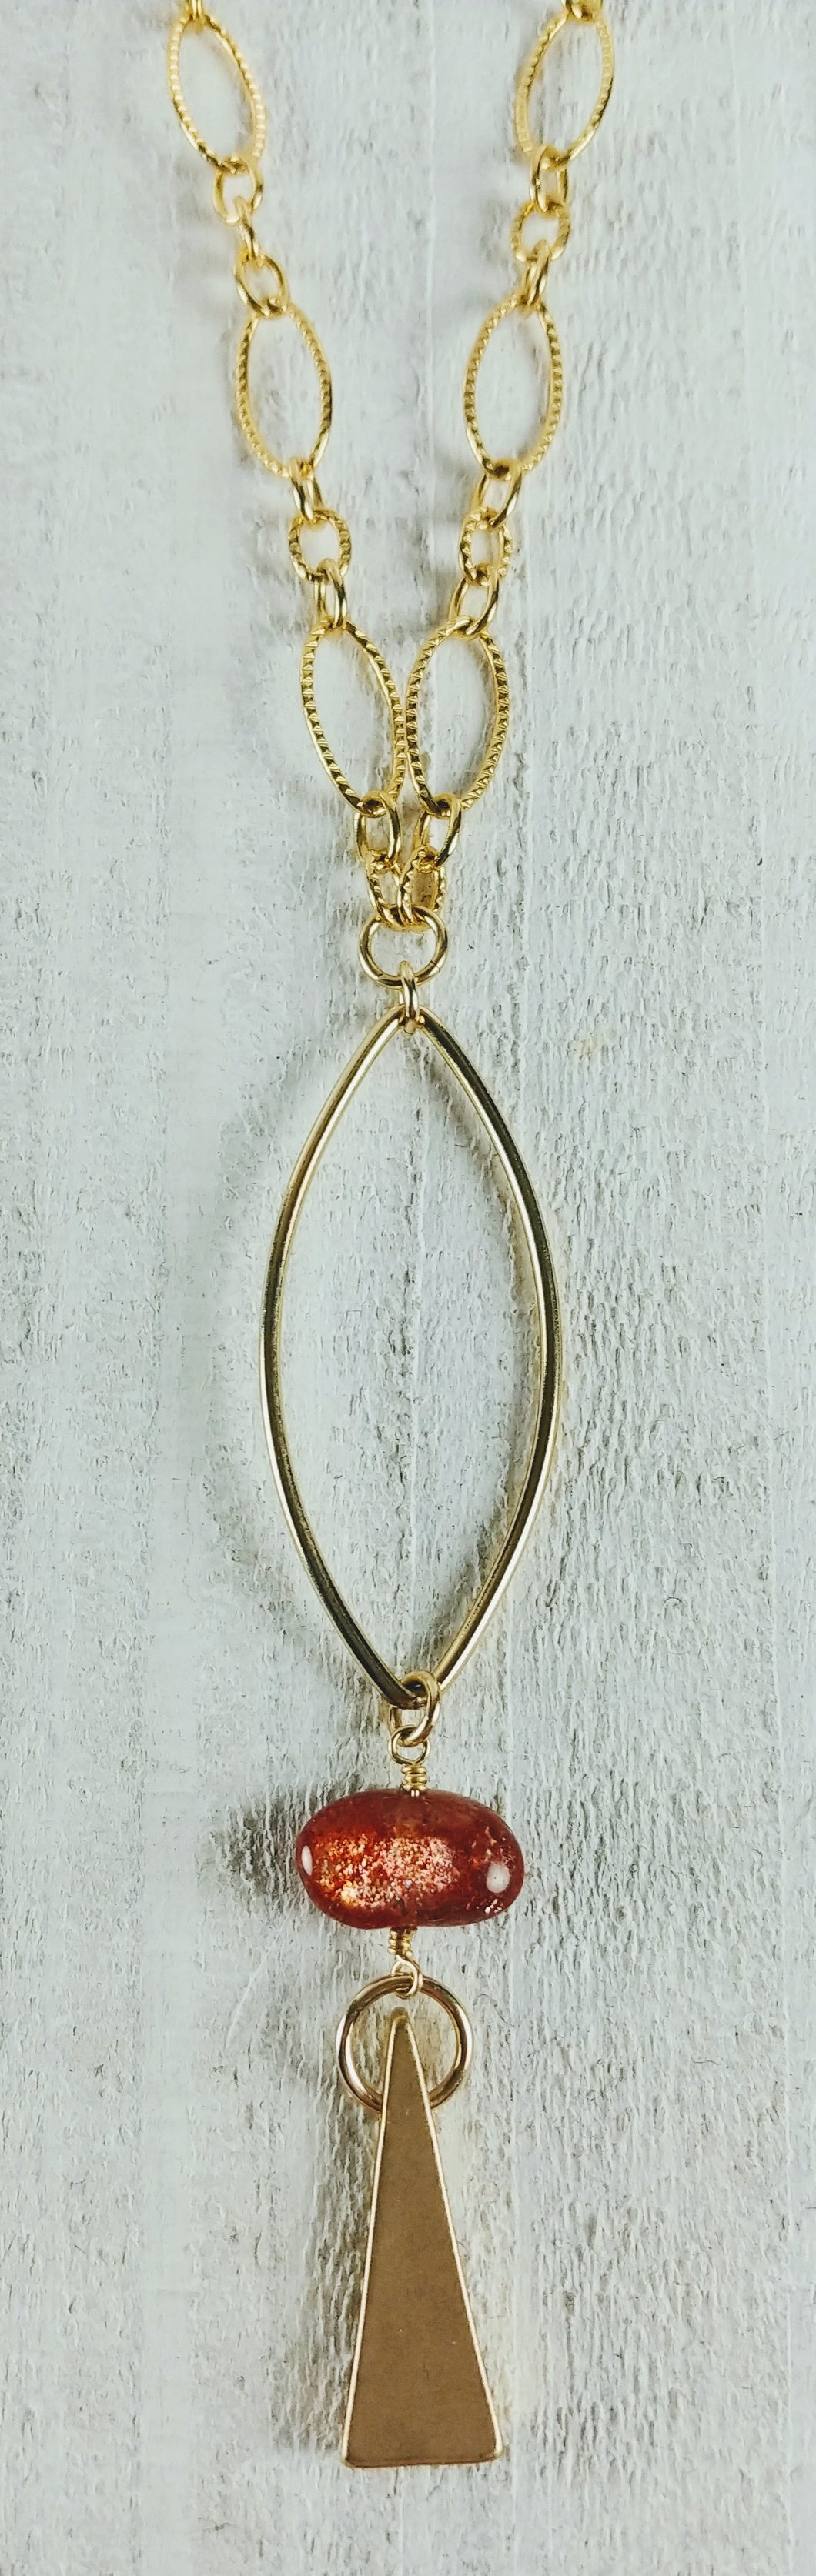 Gold Filled Oval Triangle Necklace with Sunstone